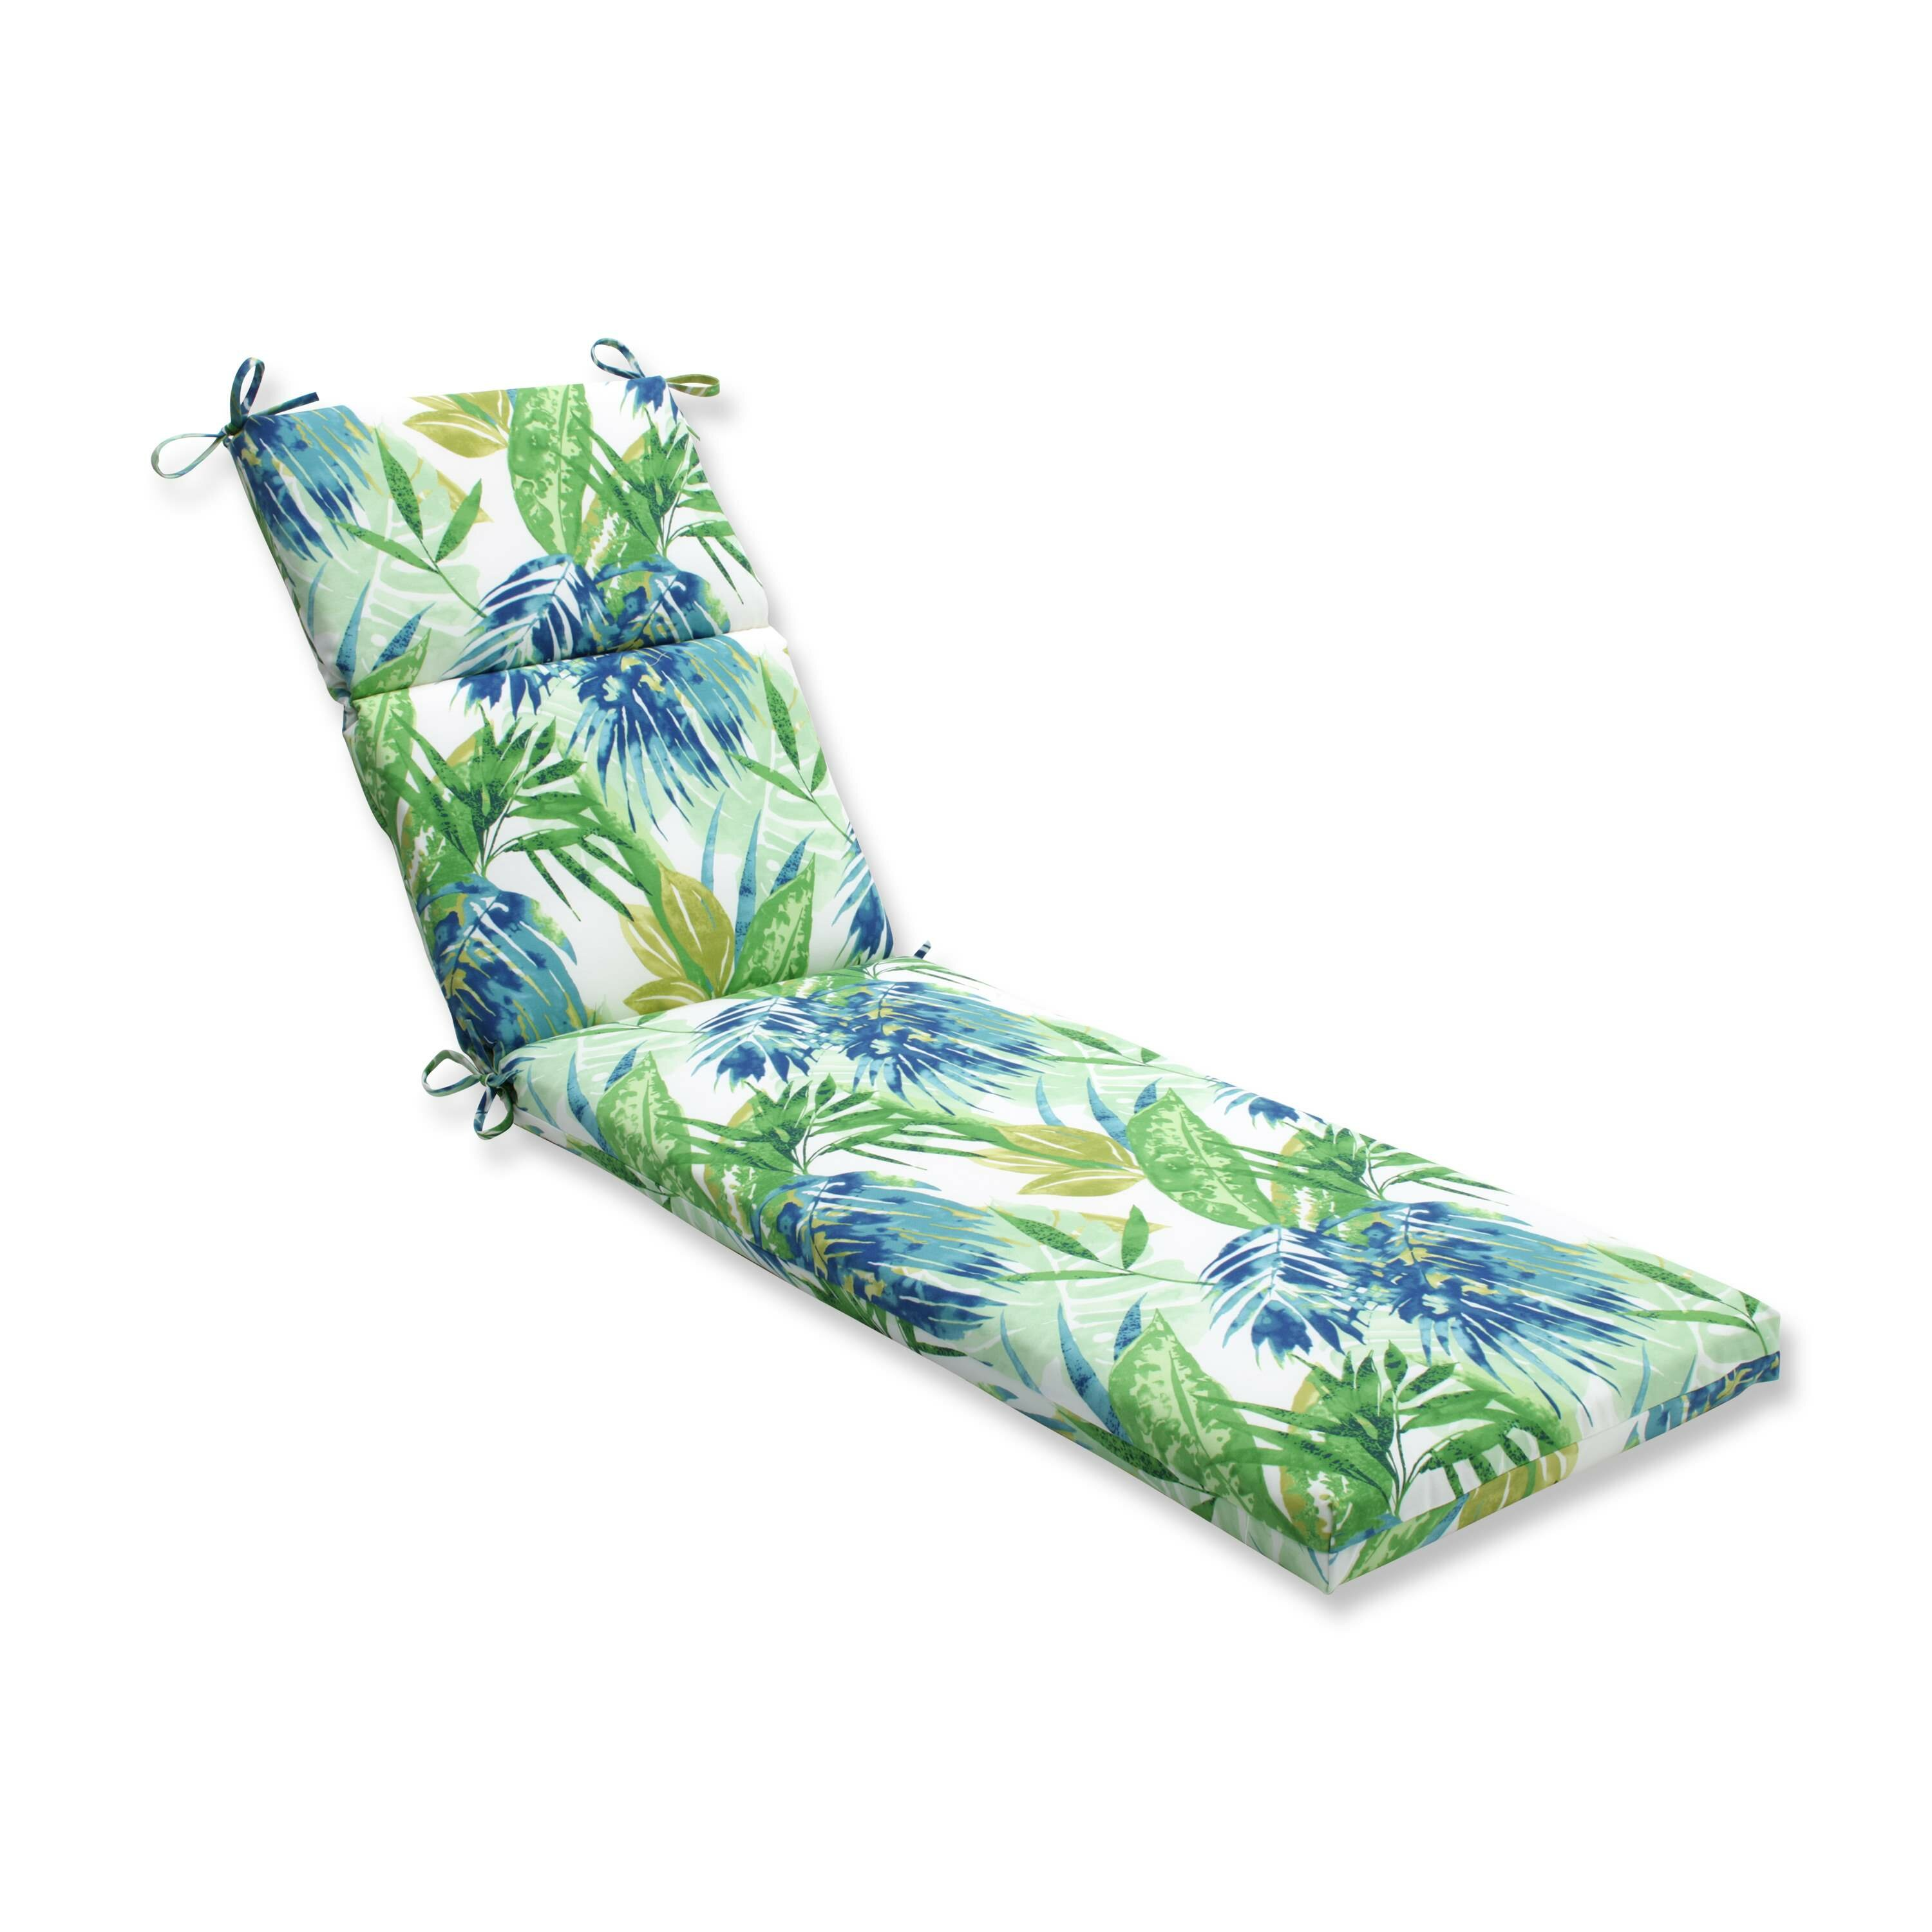 mattress home today pillow overstock garden solid free perfect cushion fabric lounge sunbrella outdoor shipping product chaise with